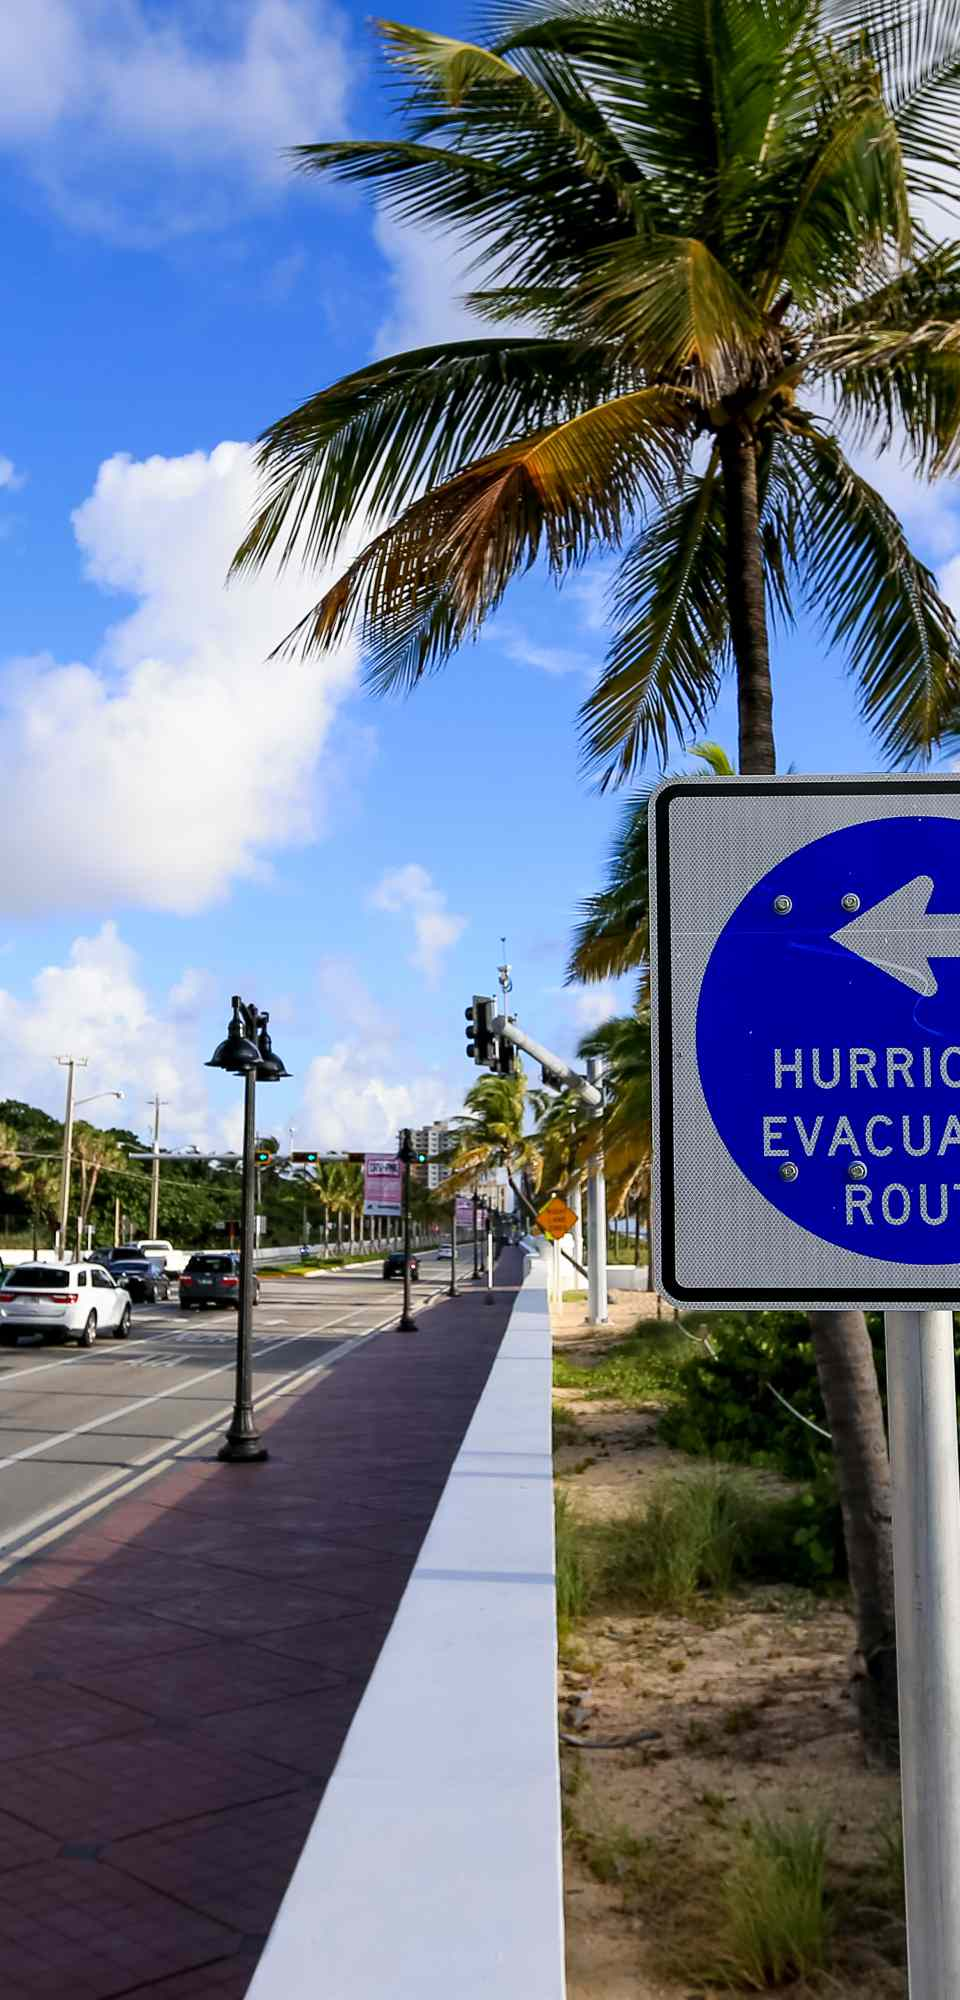 Hurricane evacuation route sign along highway in Fort Lauderdale, Florida.